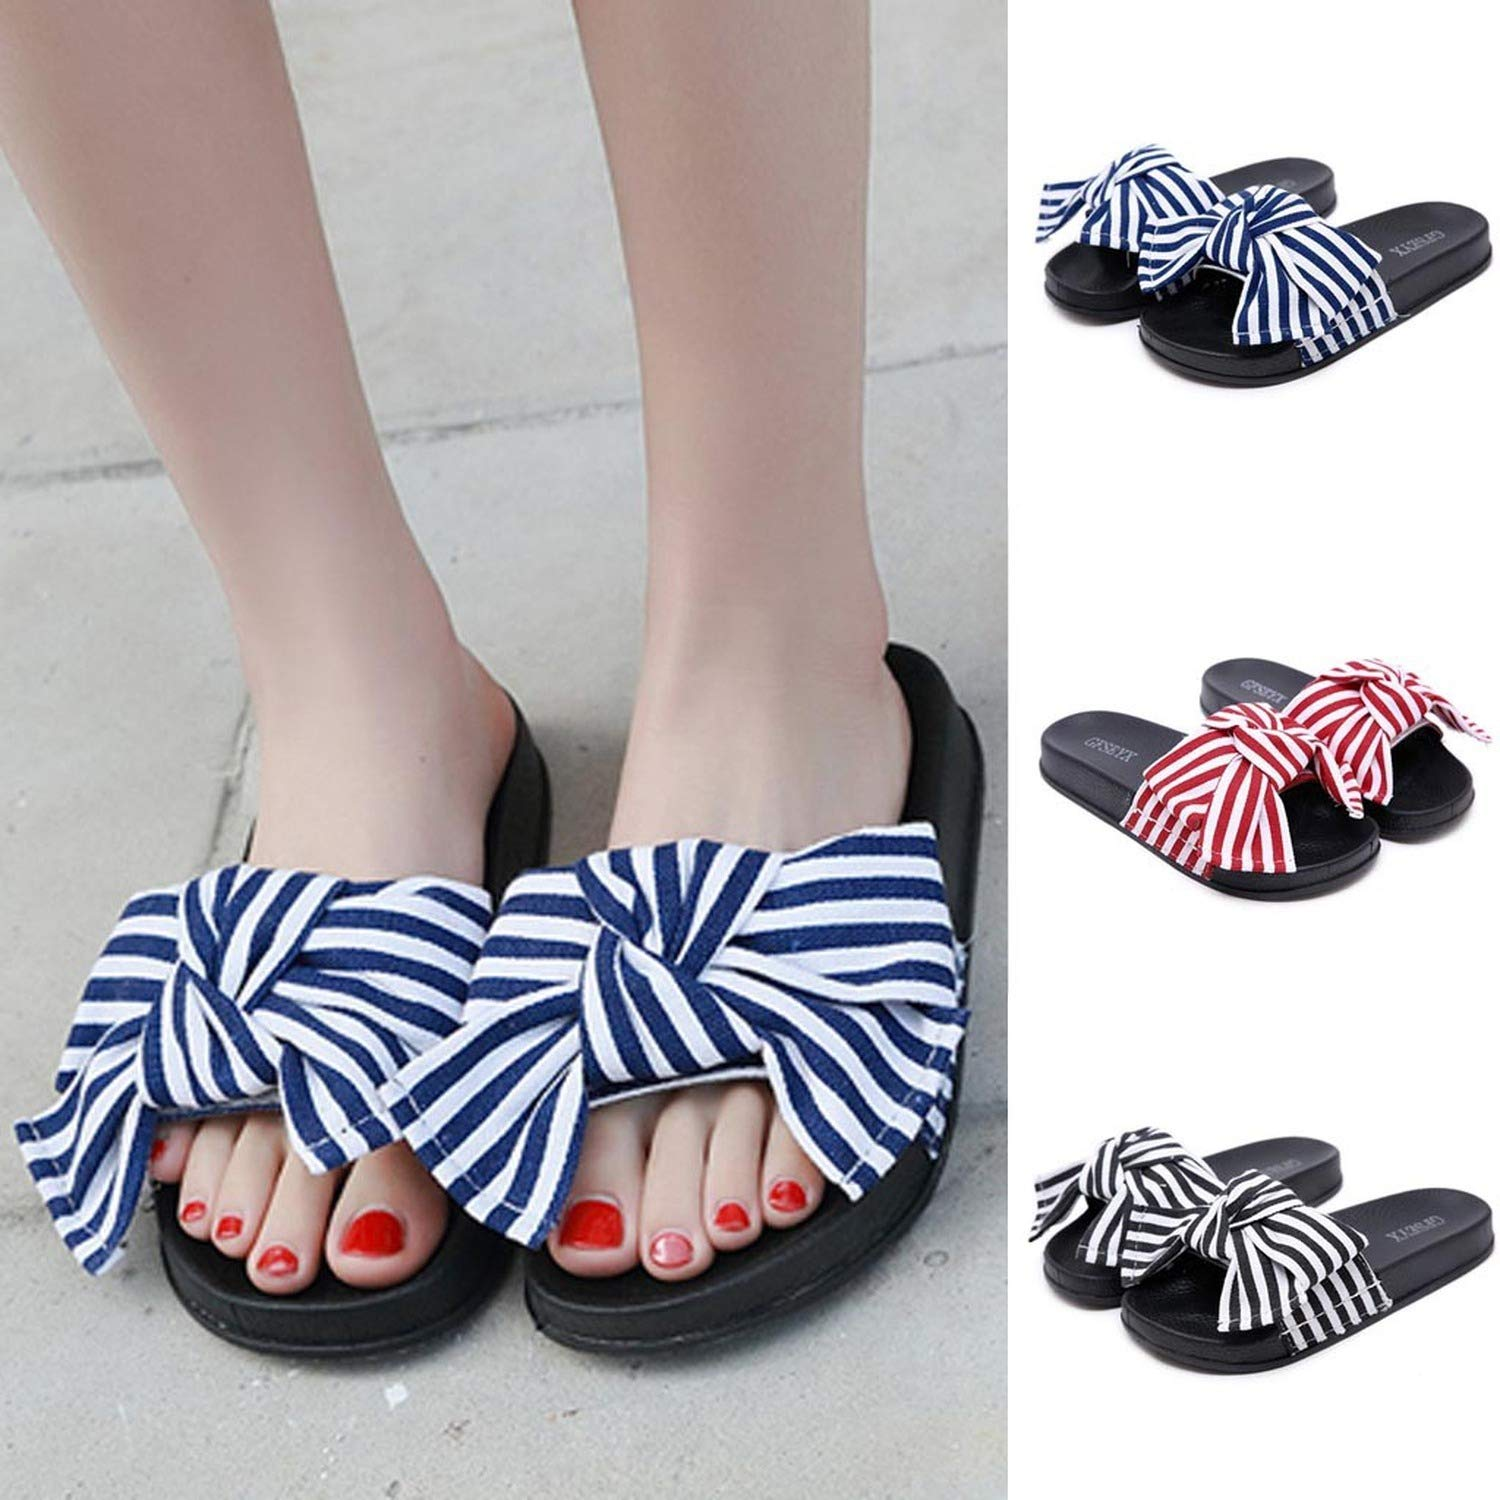 Women Slipper Summer Bow Knot Slipper Fashion Casual Home Slippers Beach Shoes Zapatillas